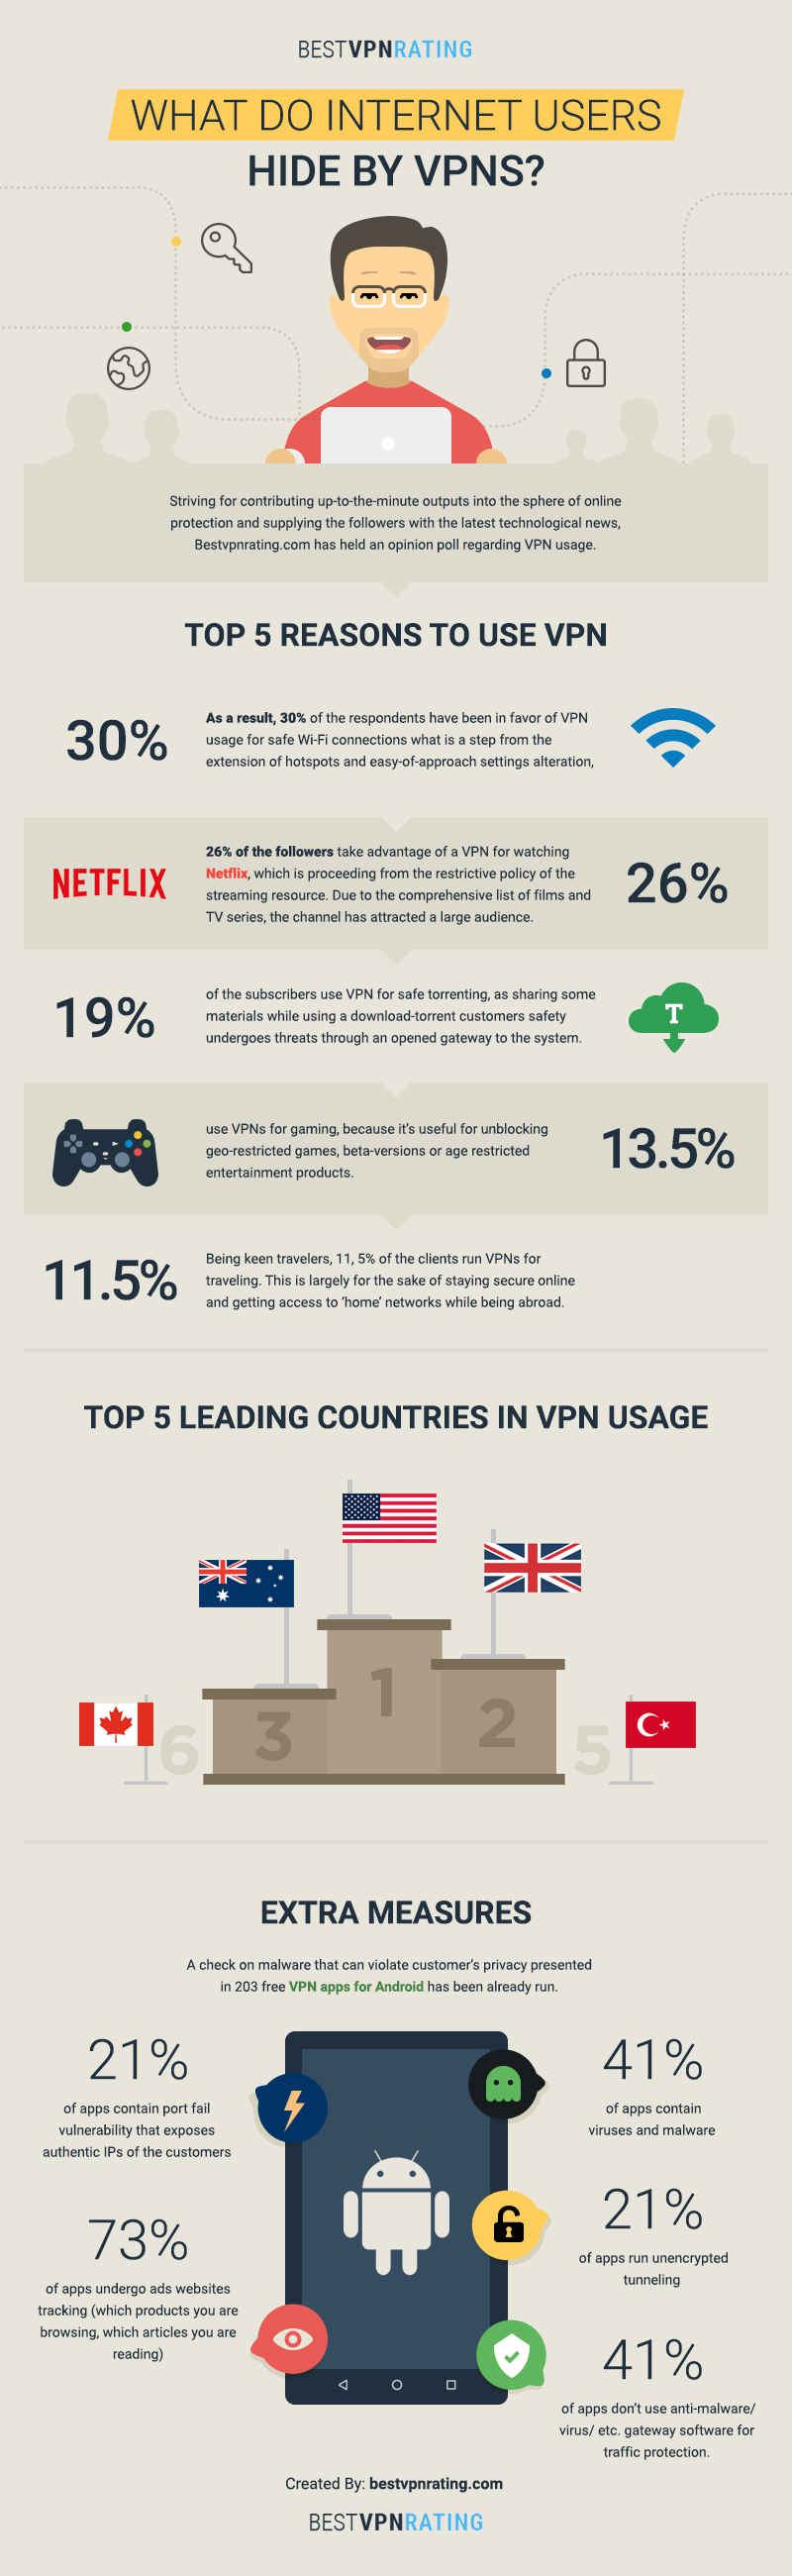 What Do Internet Users Hide By VPNS?